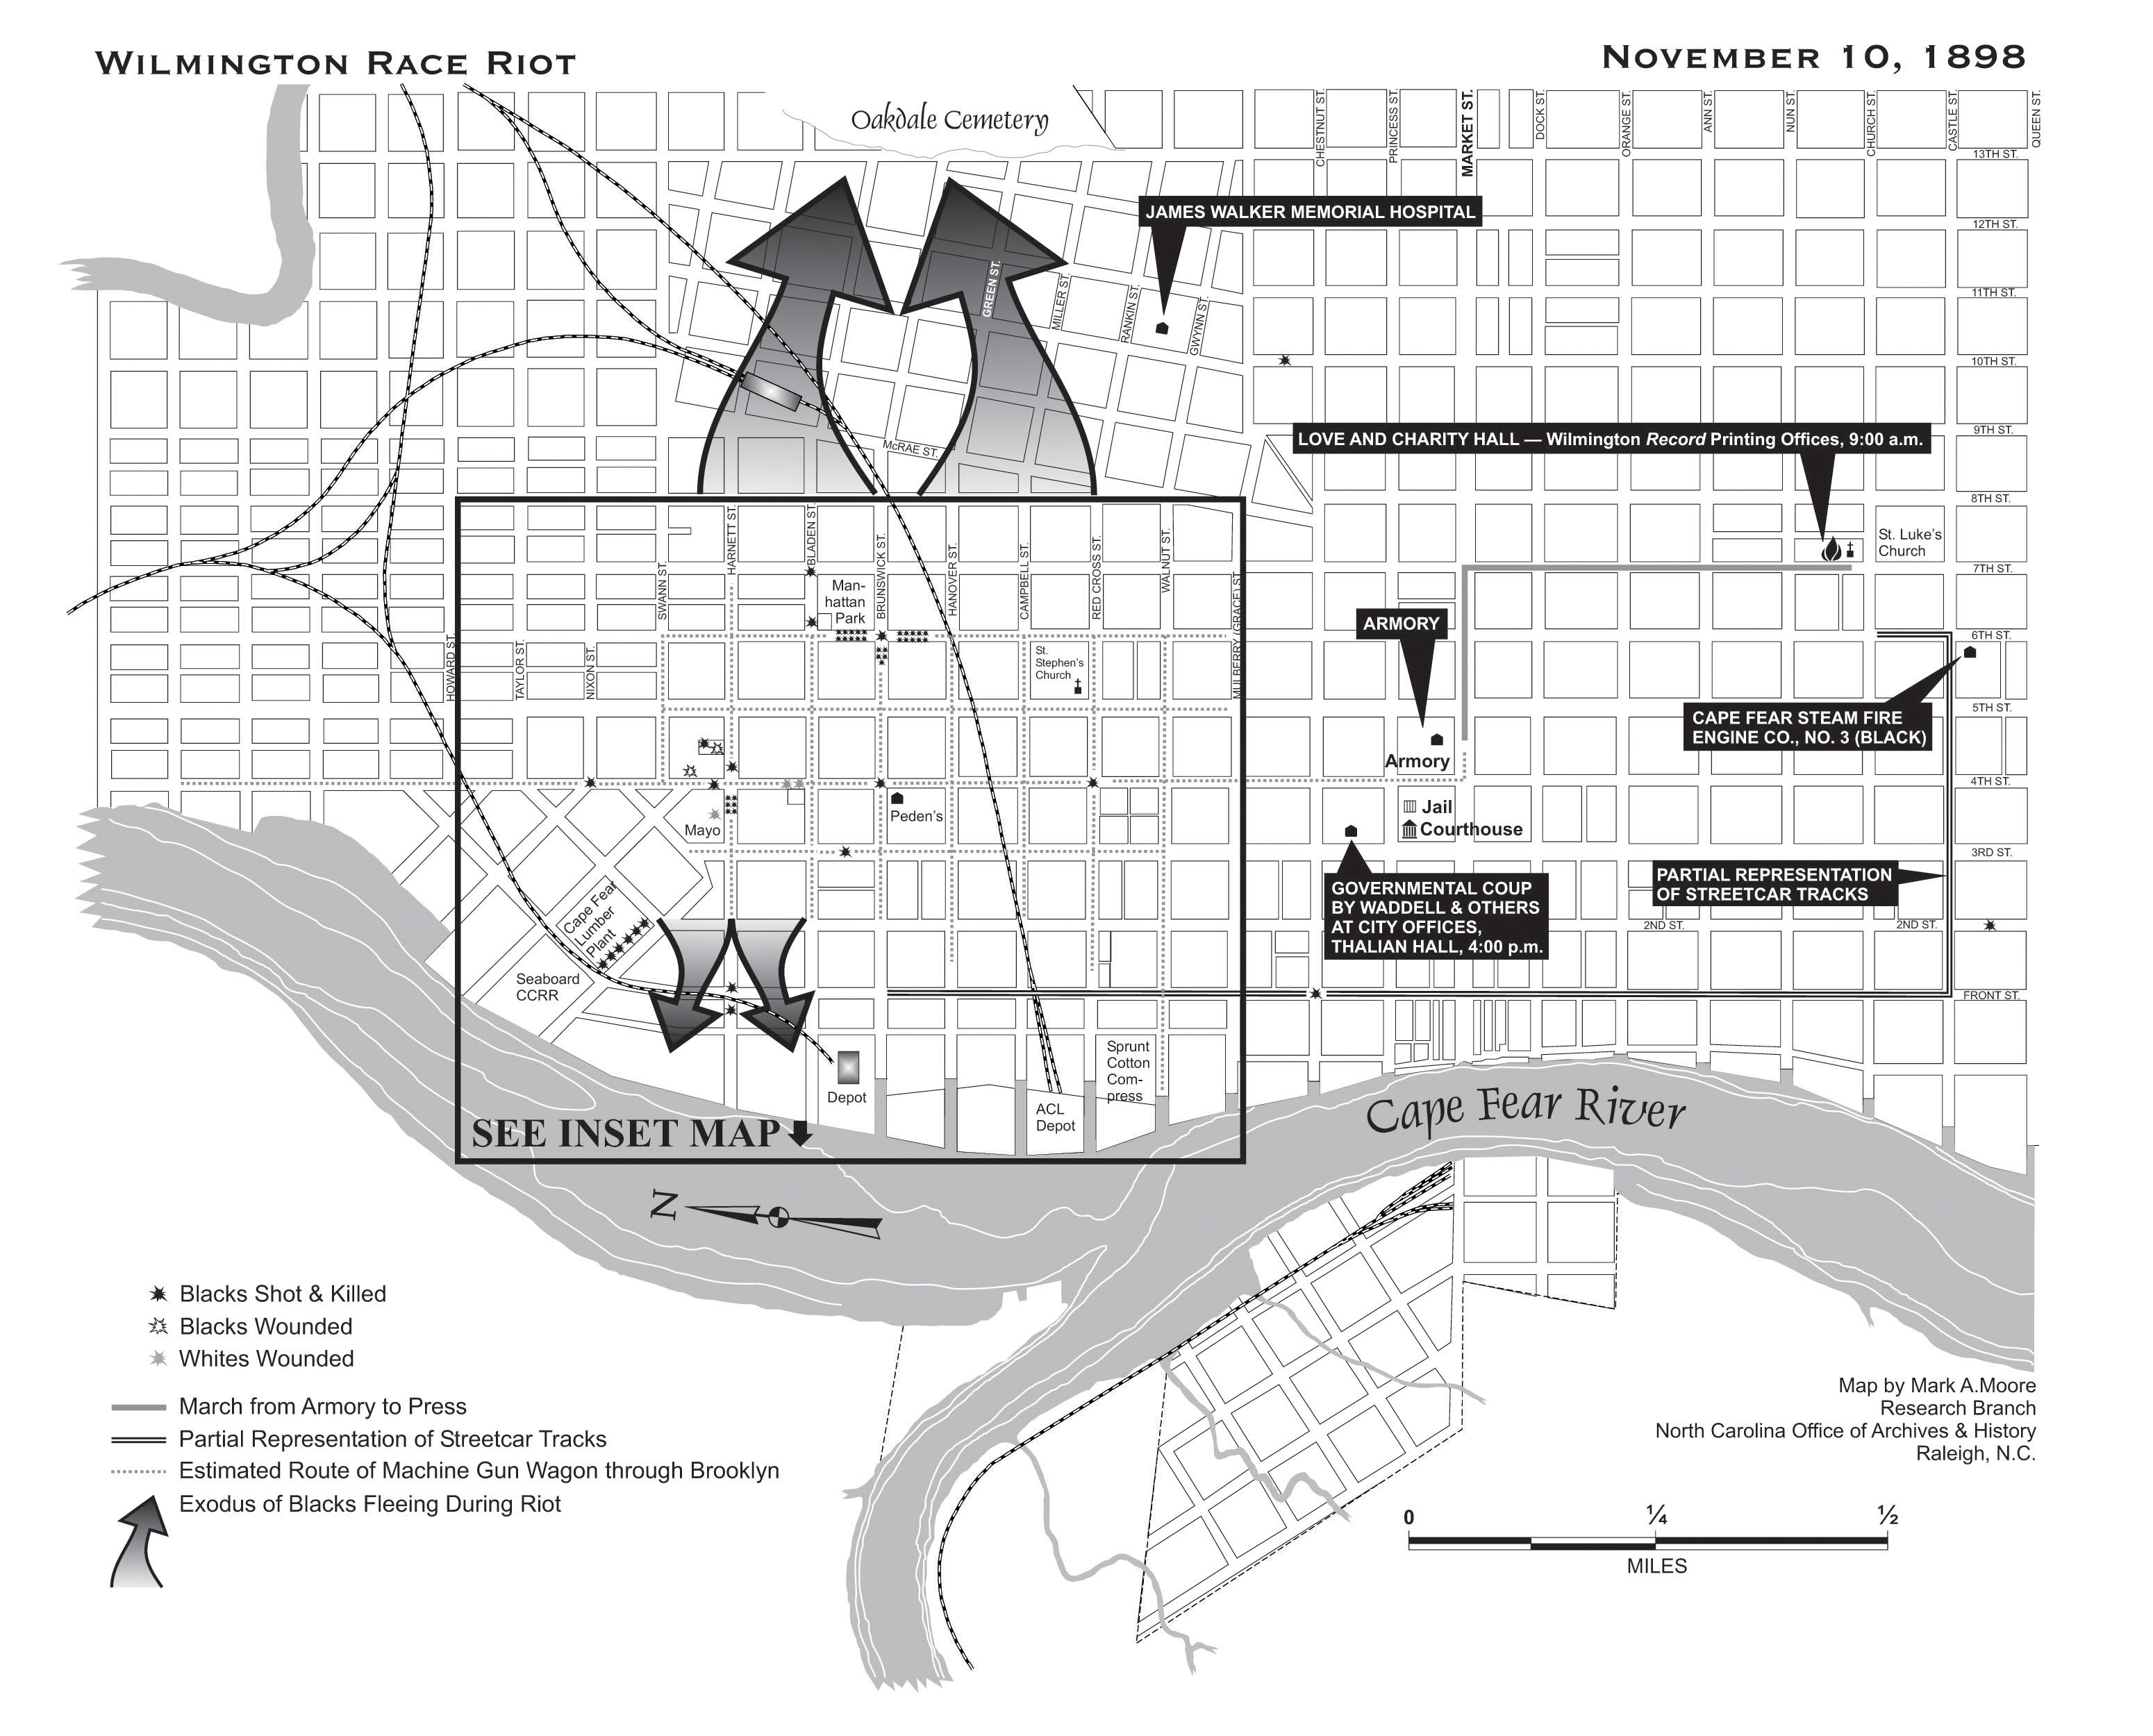 Modern map of the Wilmington Race Riot